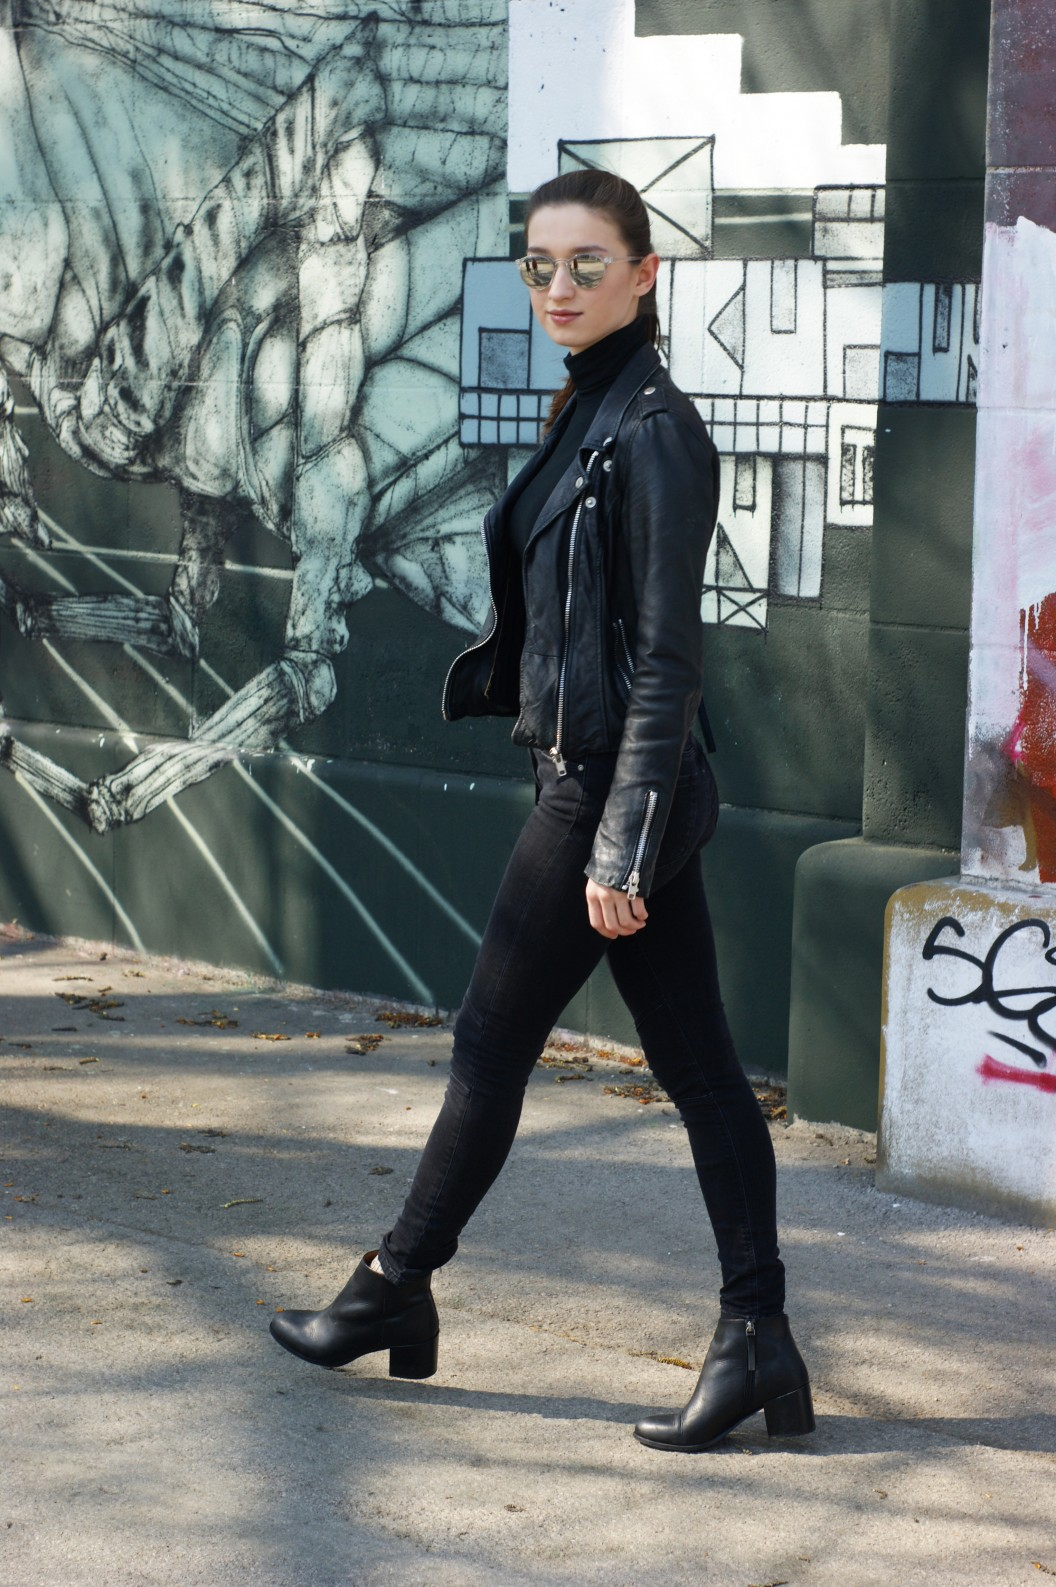 fashion blogger sarafi inspire their readers with an all black outfit. look back at you.